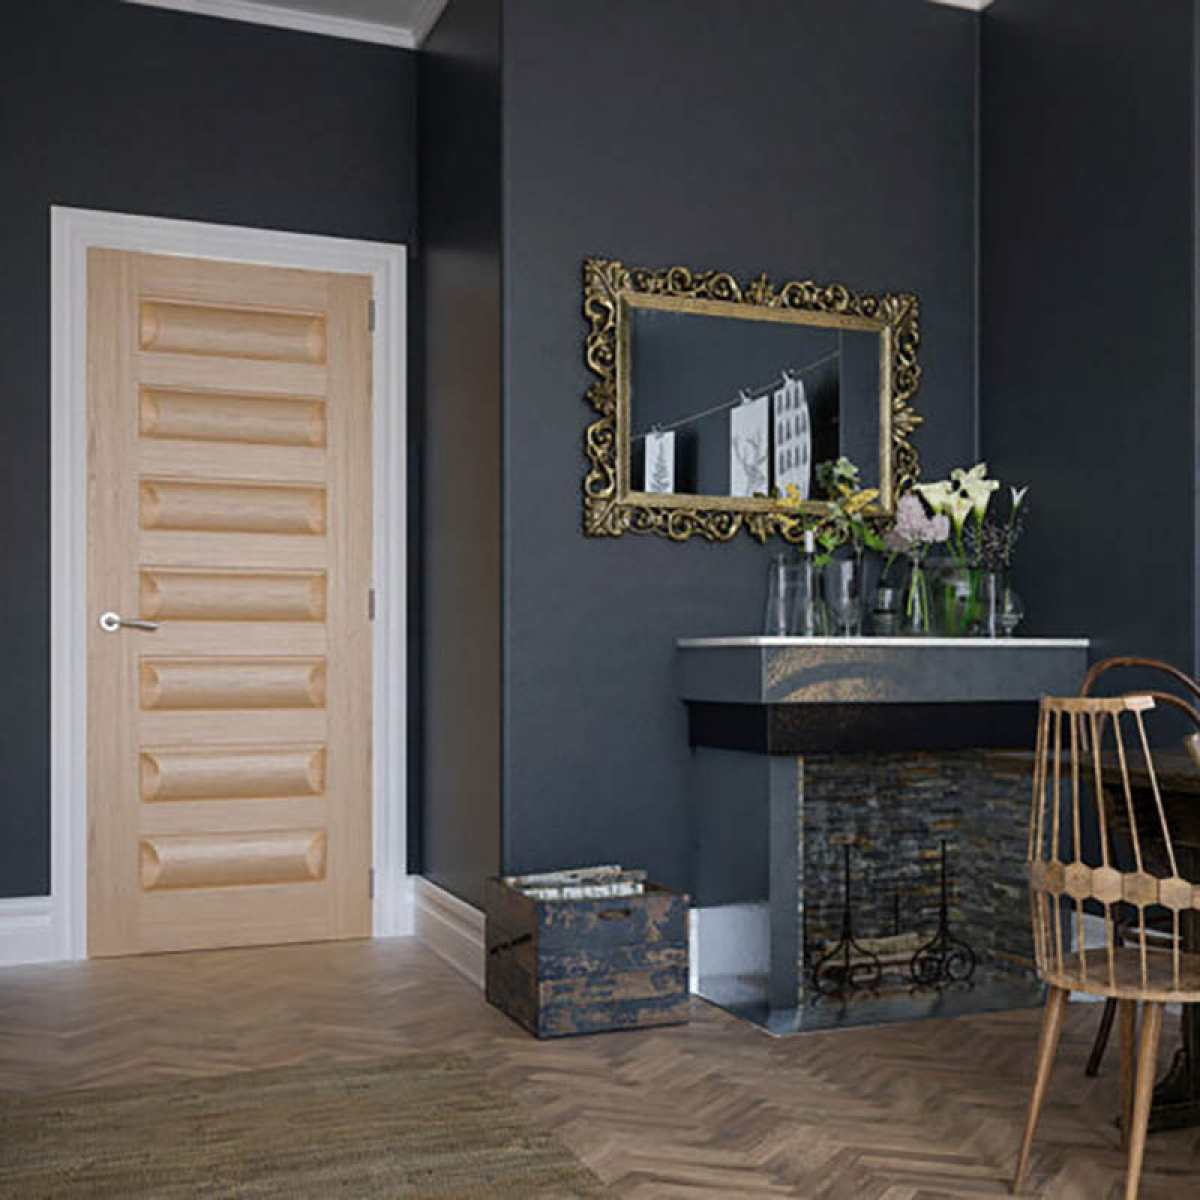 Biarritz door non glazed Image by Websters Timber